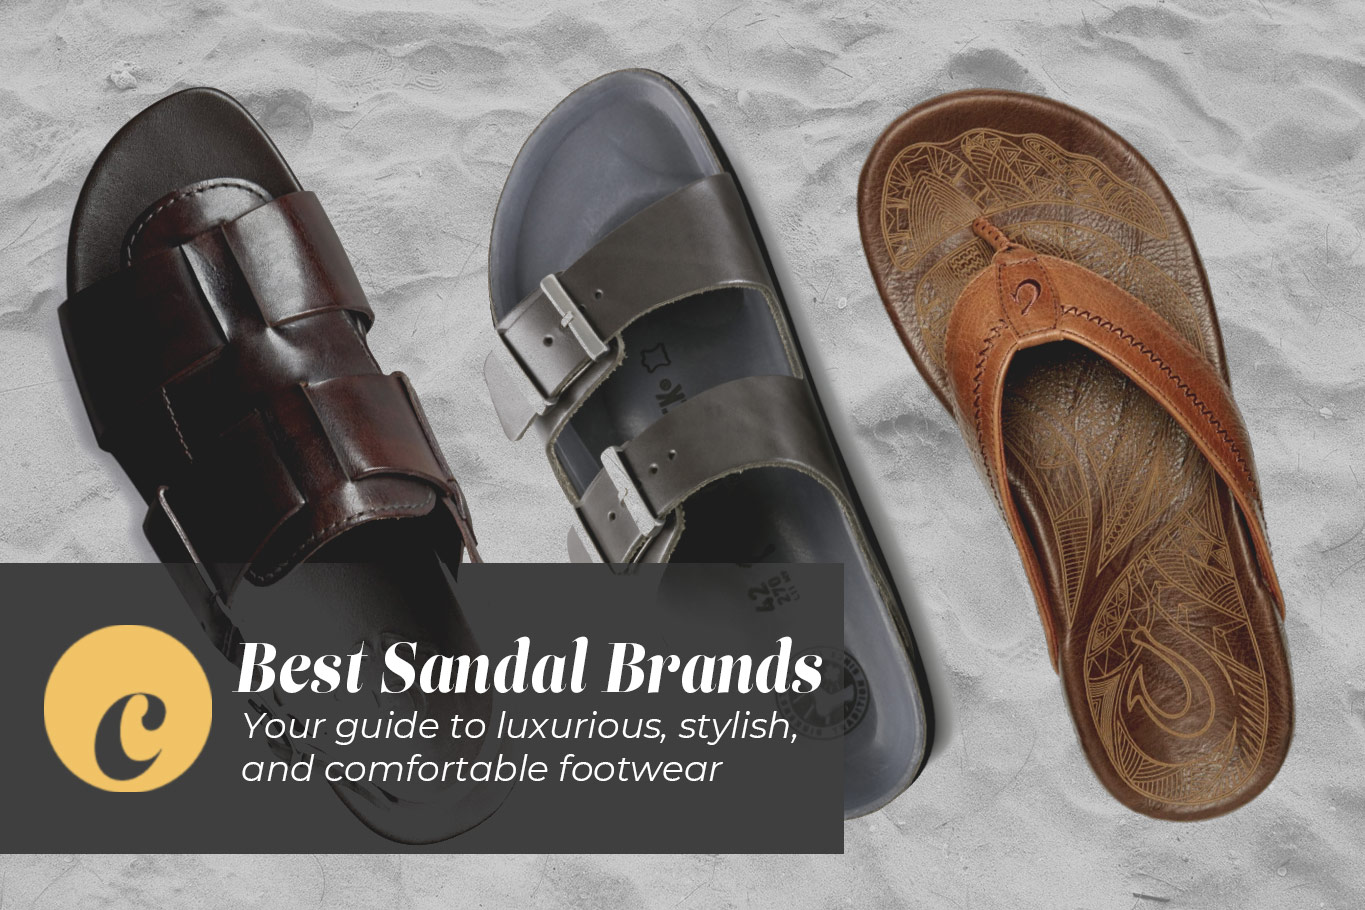 chipkos best sandal brands guide banner